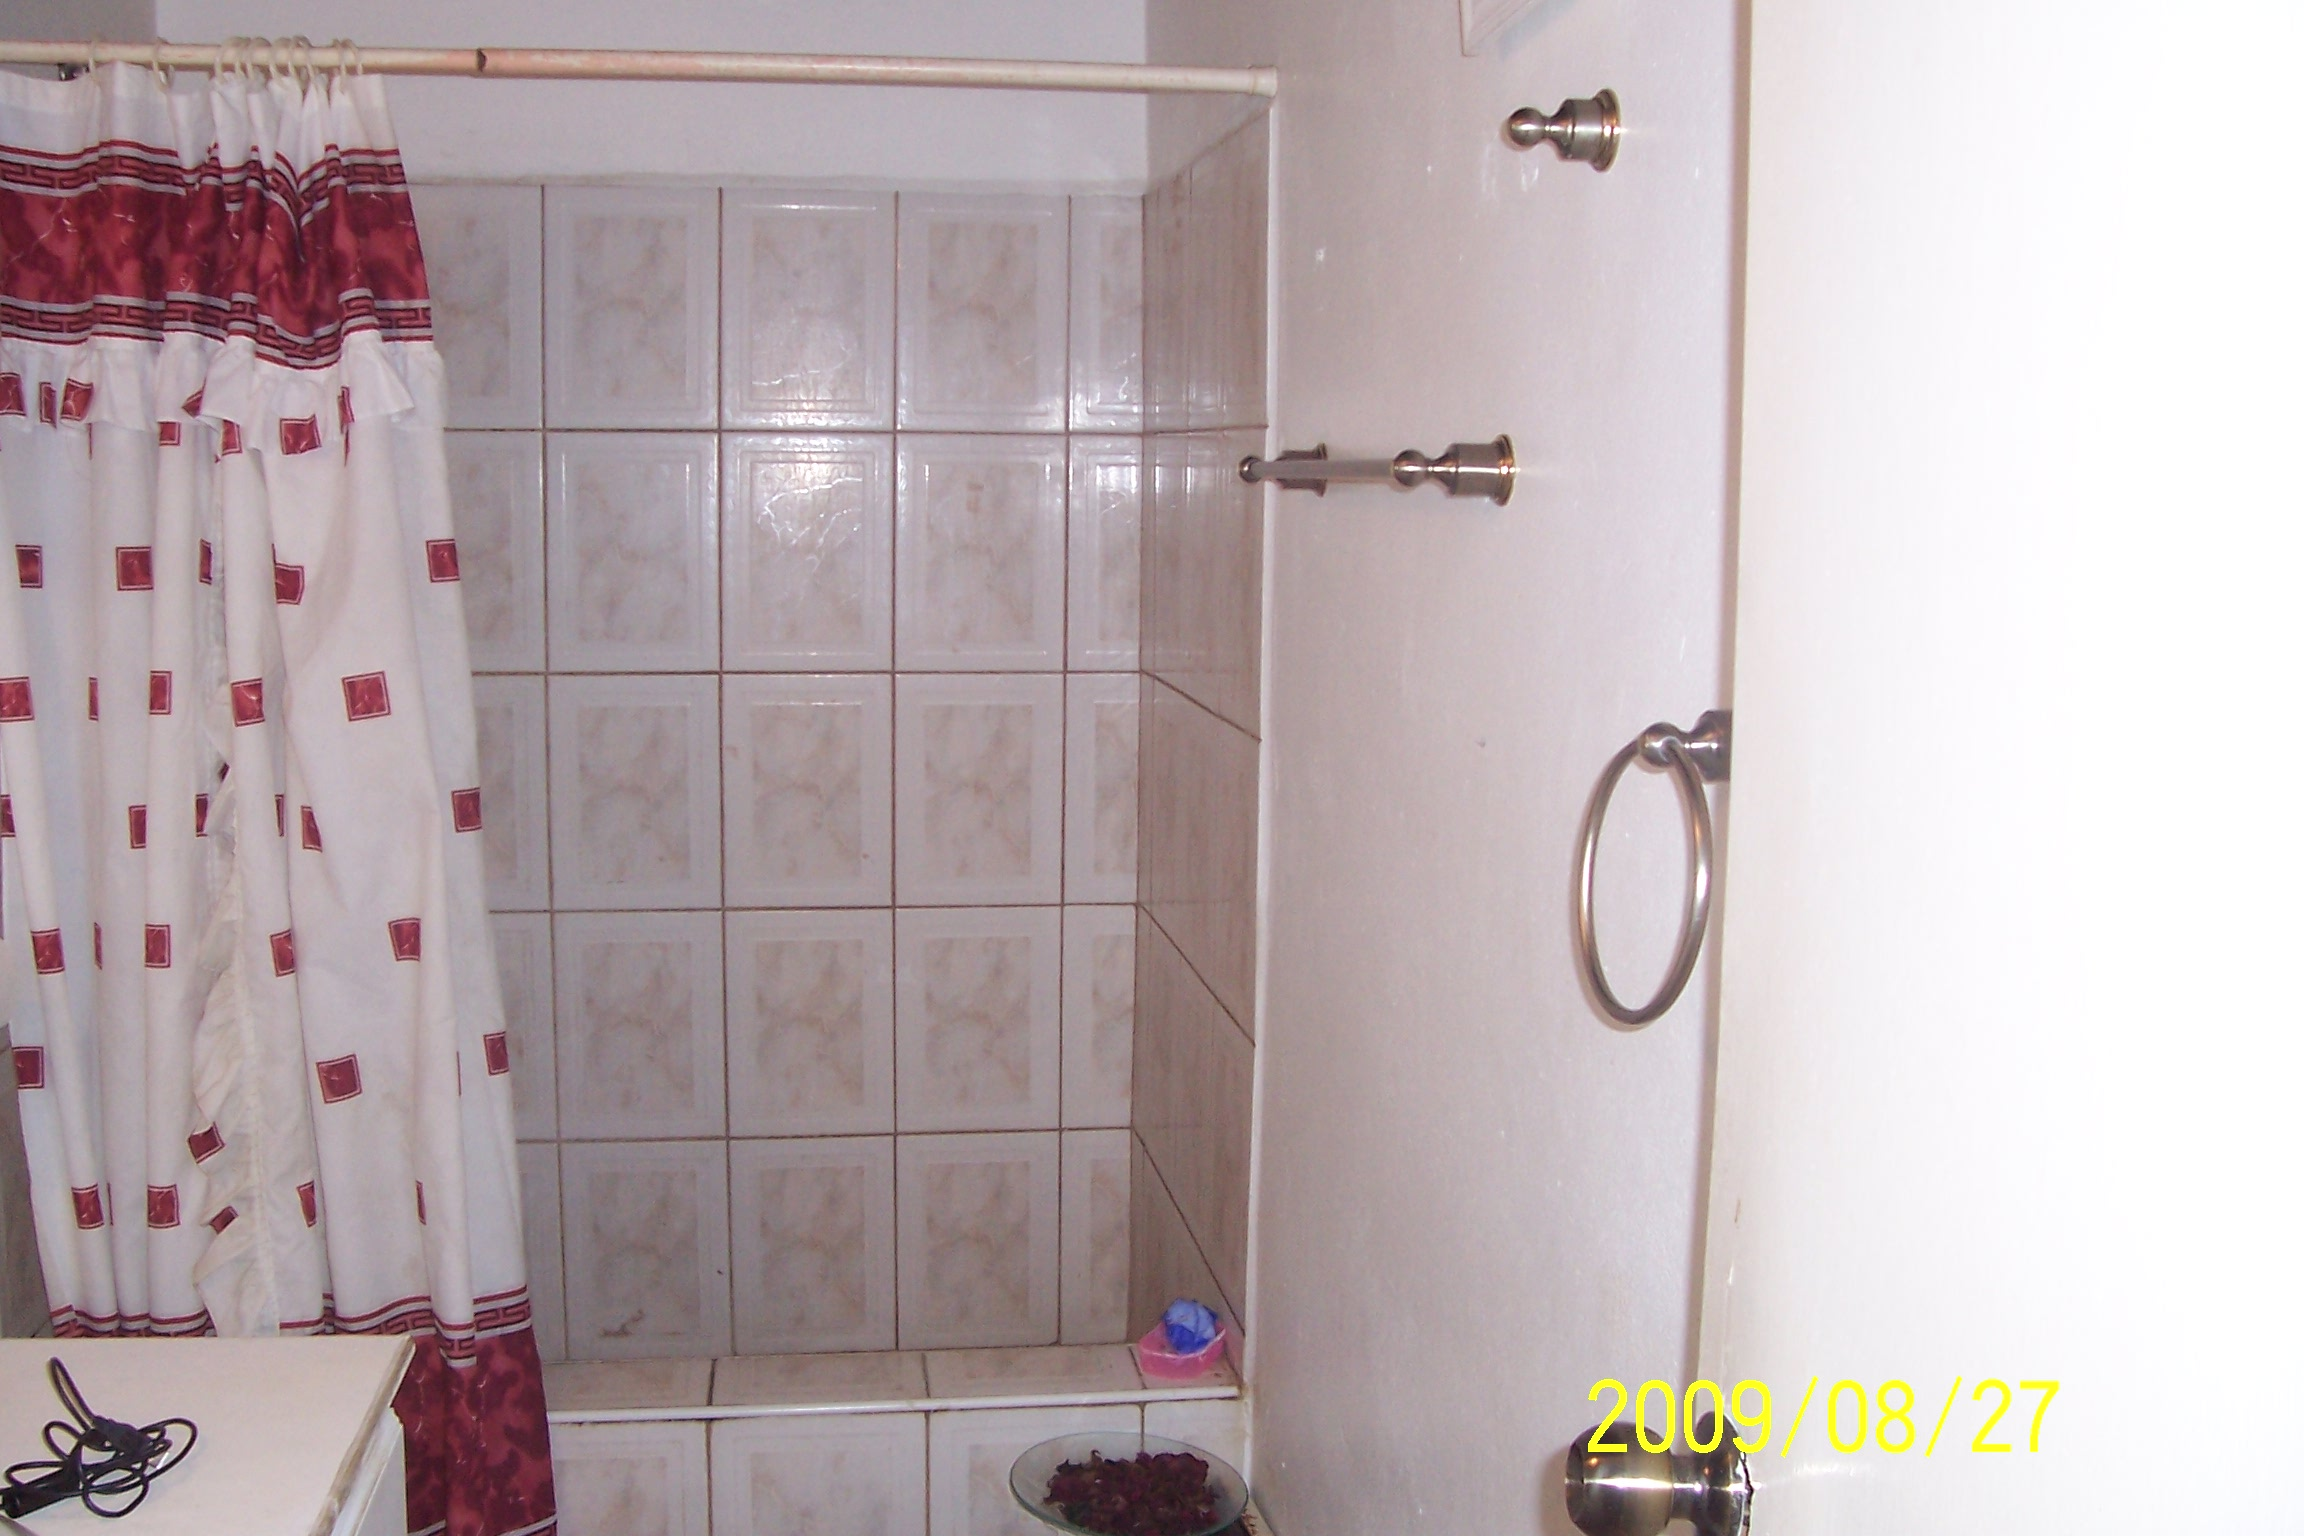 2 bedroom 1 1 2 bath townhouse for sale or rent in jan for 1 bedroom 1 bath